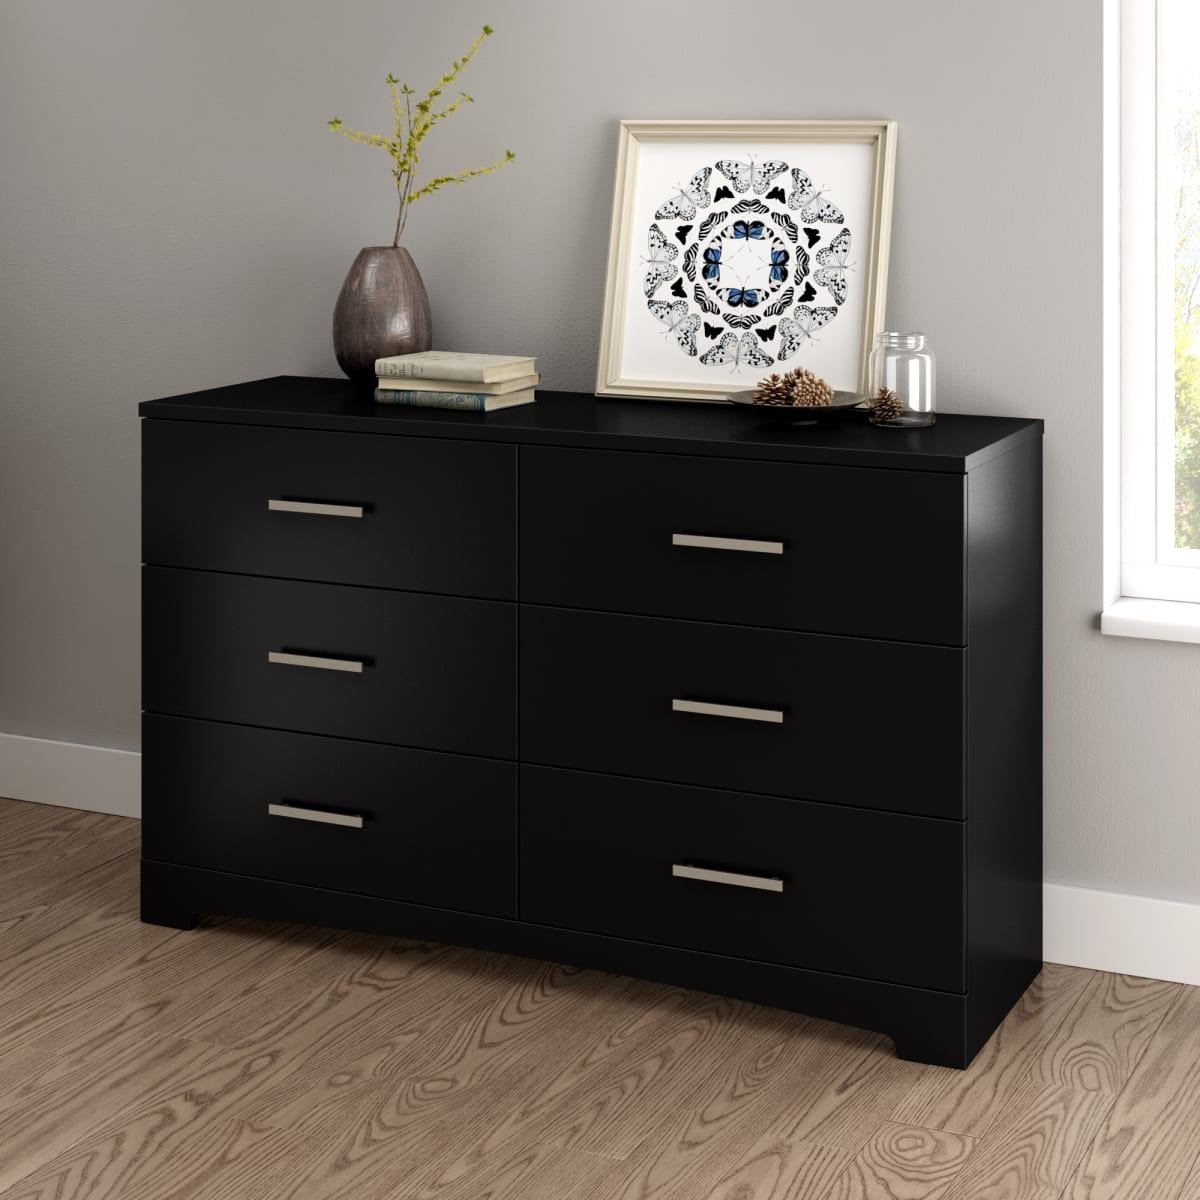 Gramercy 6 Drawer Double Dresser Dresser Master Bedroom Furniture Products South Shore Furniture Us Furniture For Sale Designed And Manufactured In North America